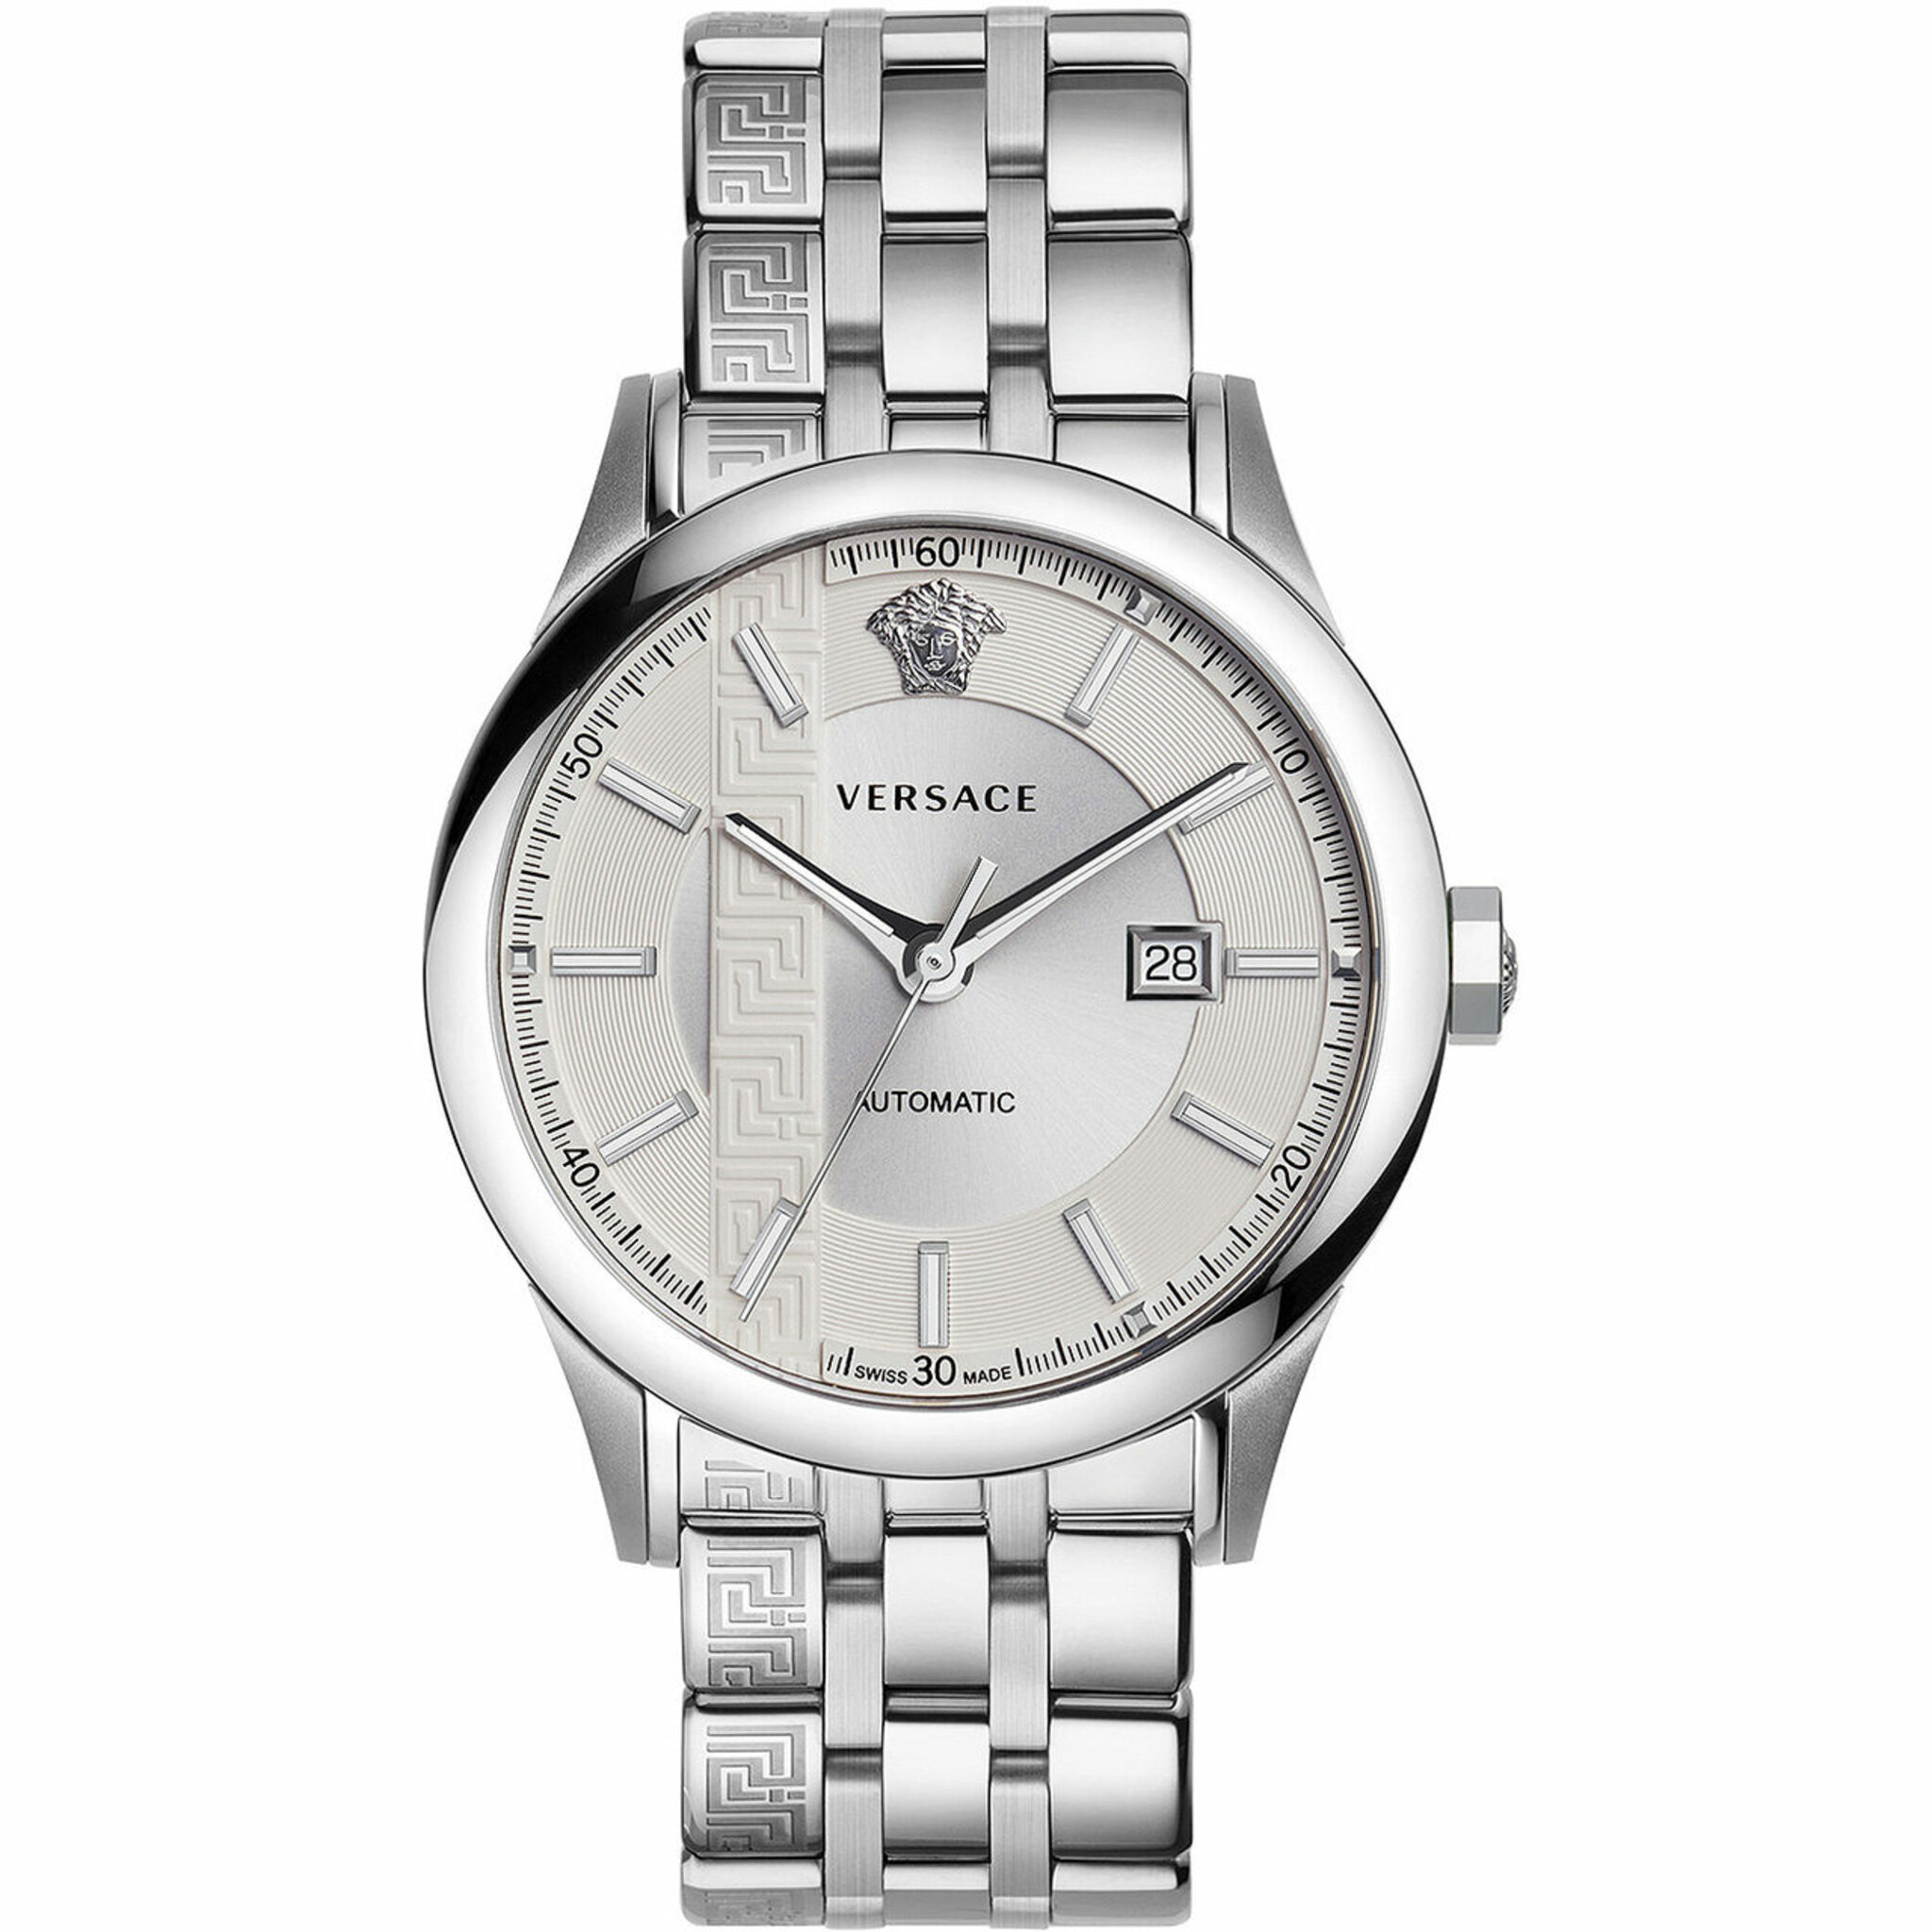 V18040017, Automatic, 44mm, 5atm, silver